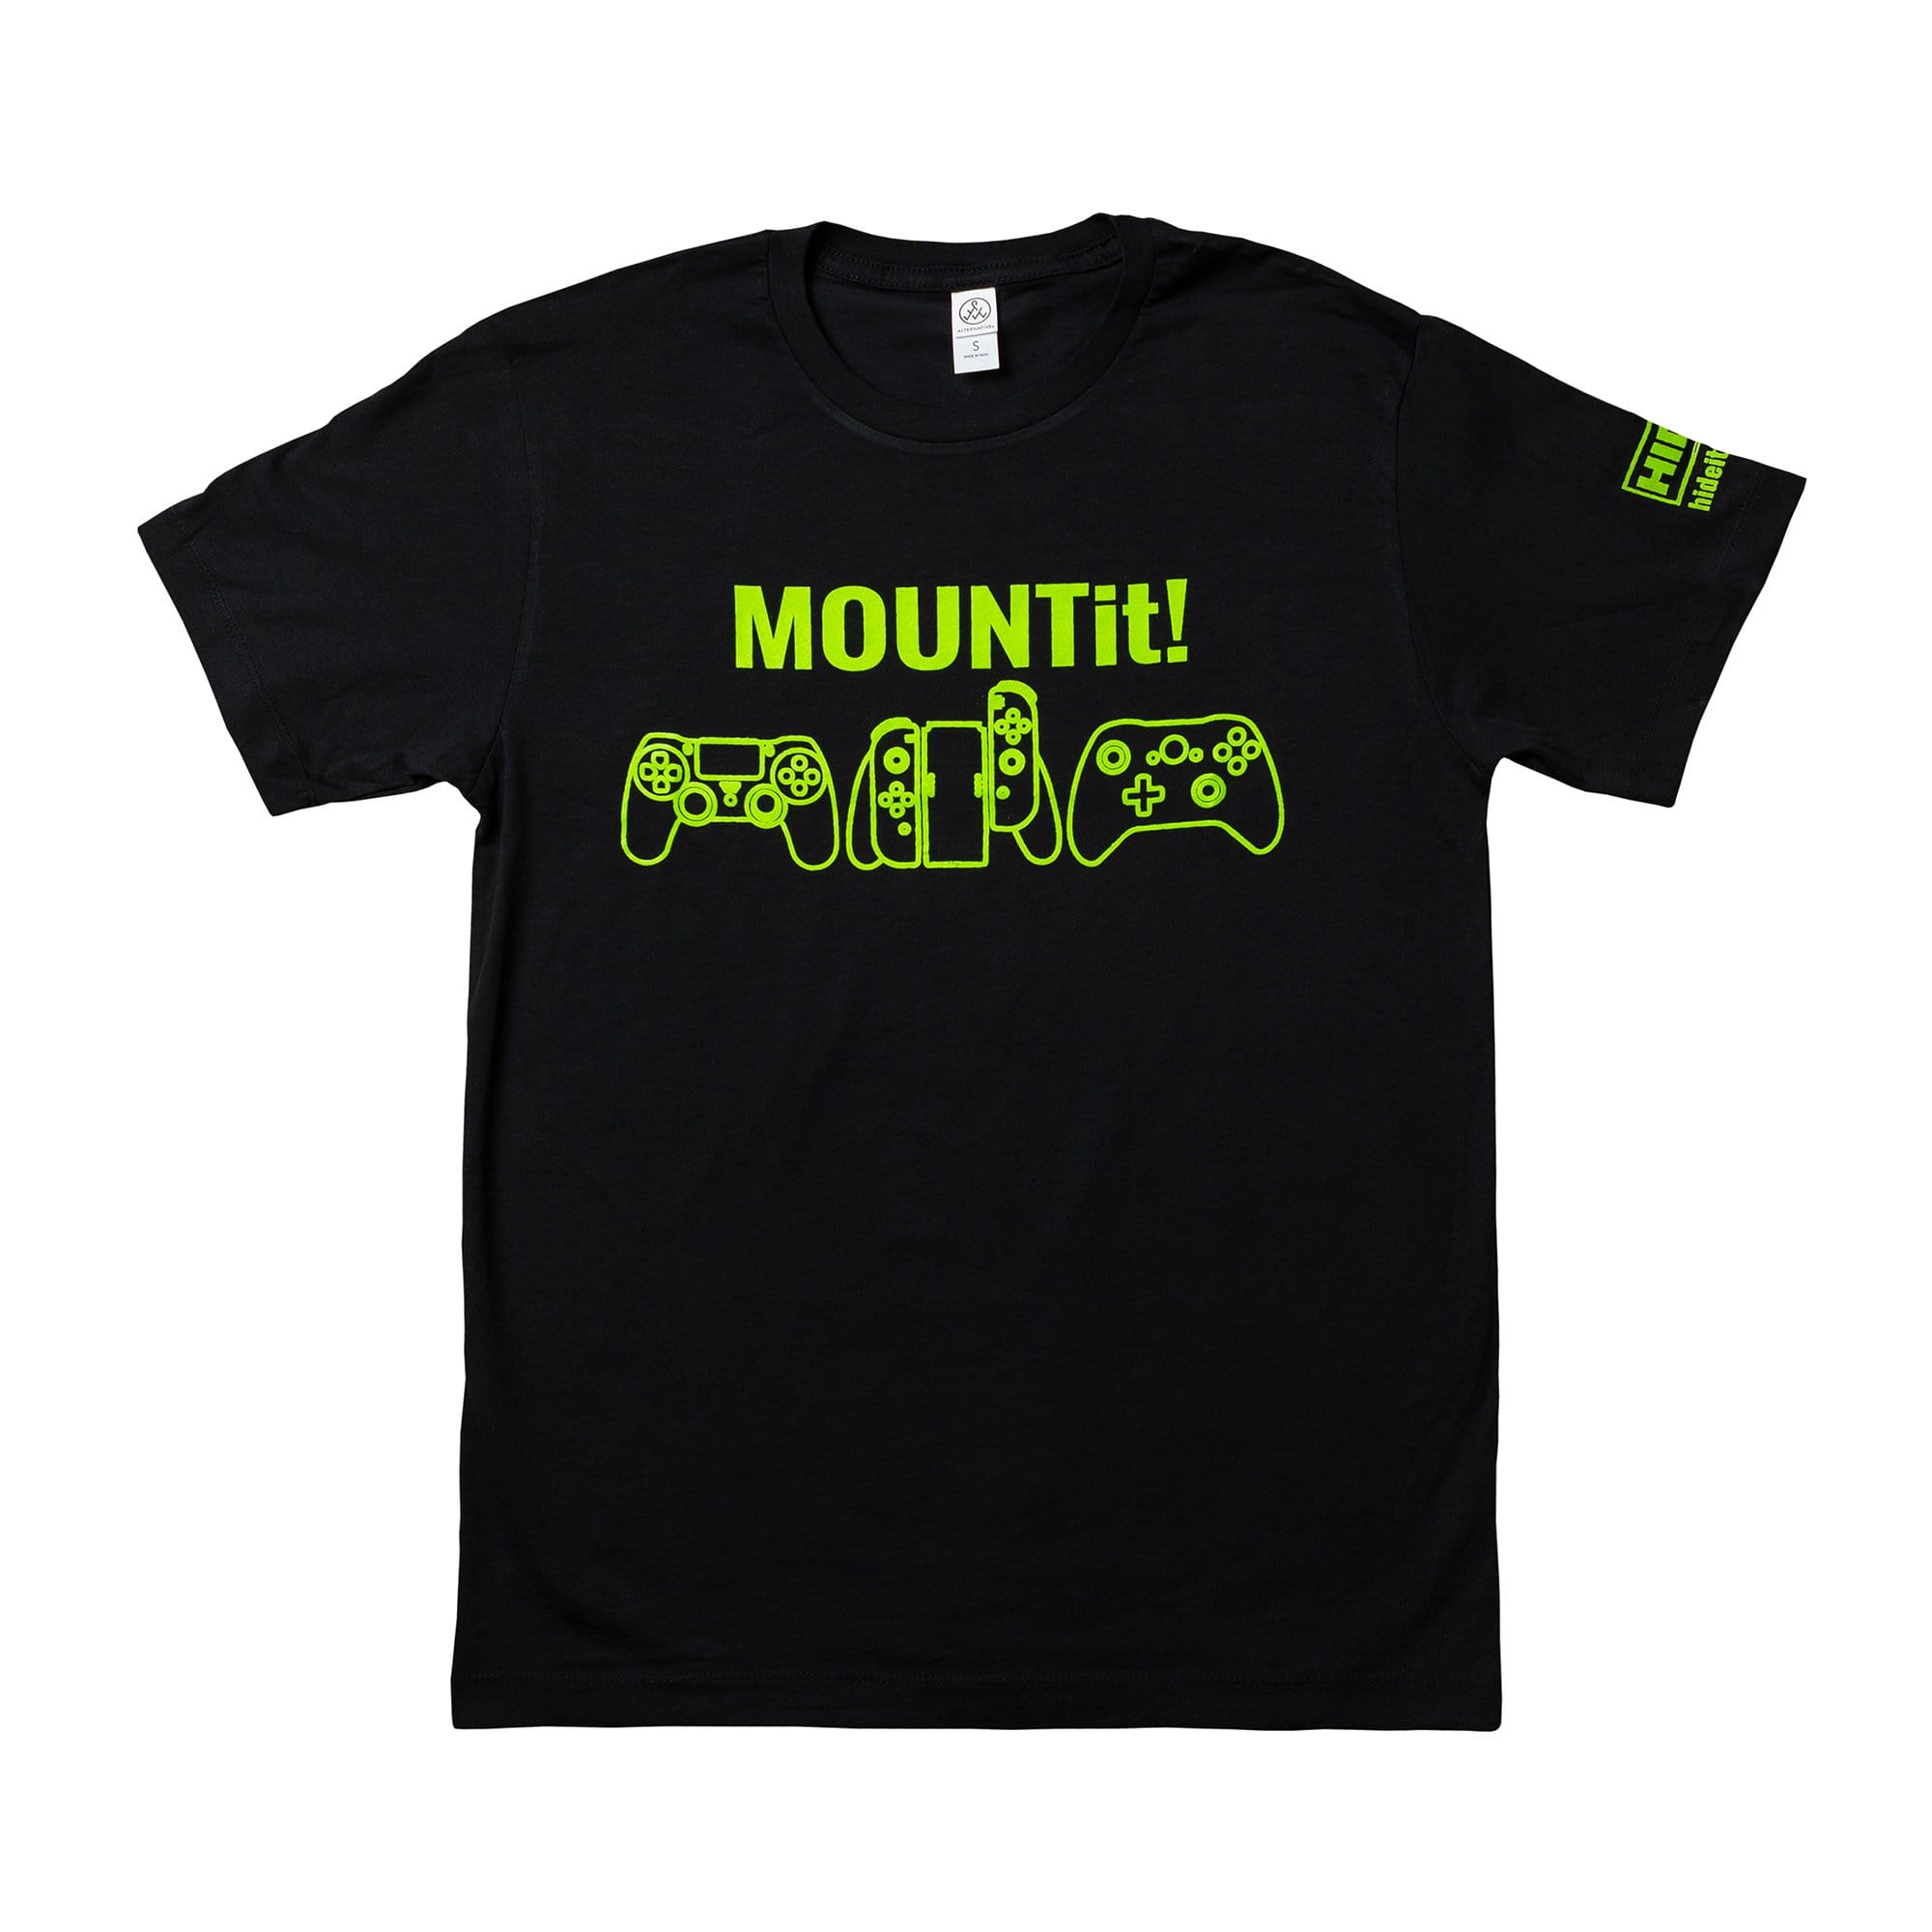 HIDEit Mounts gaming t-shirt. Black, short sleeve t-shirt. Unisex.